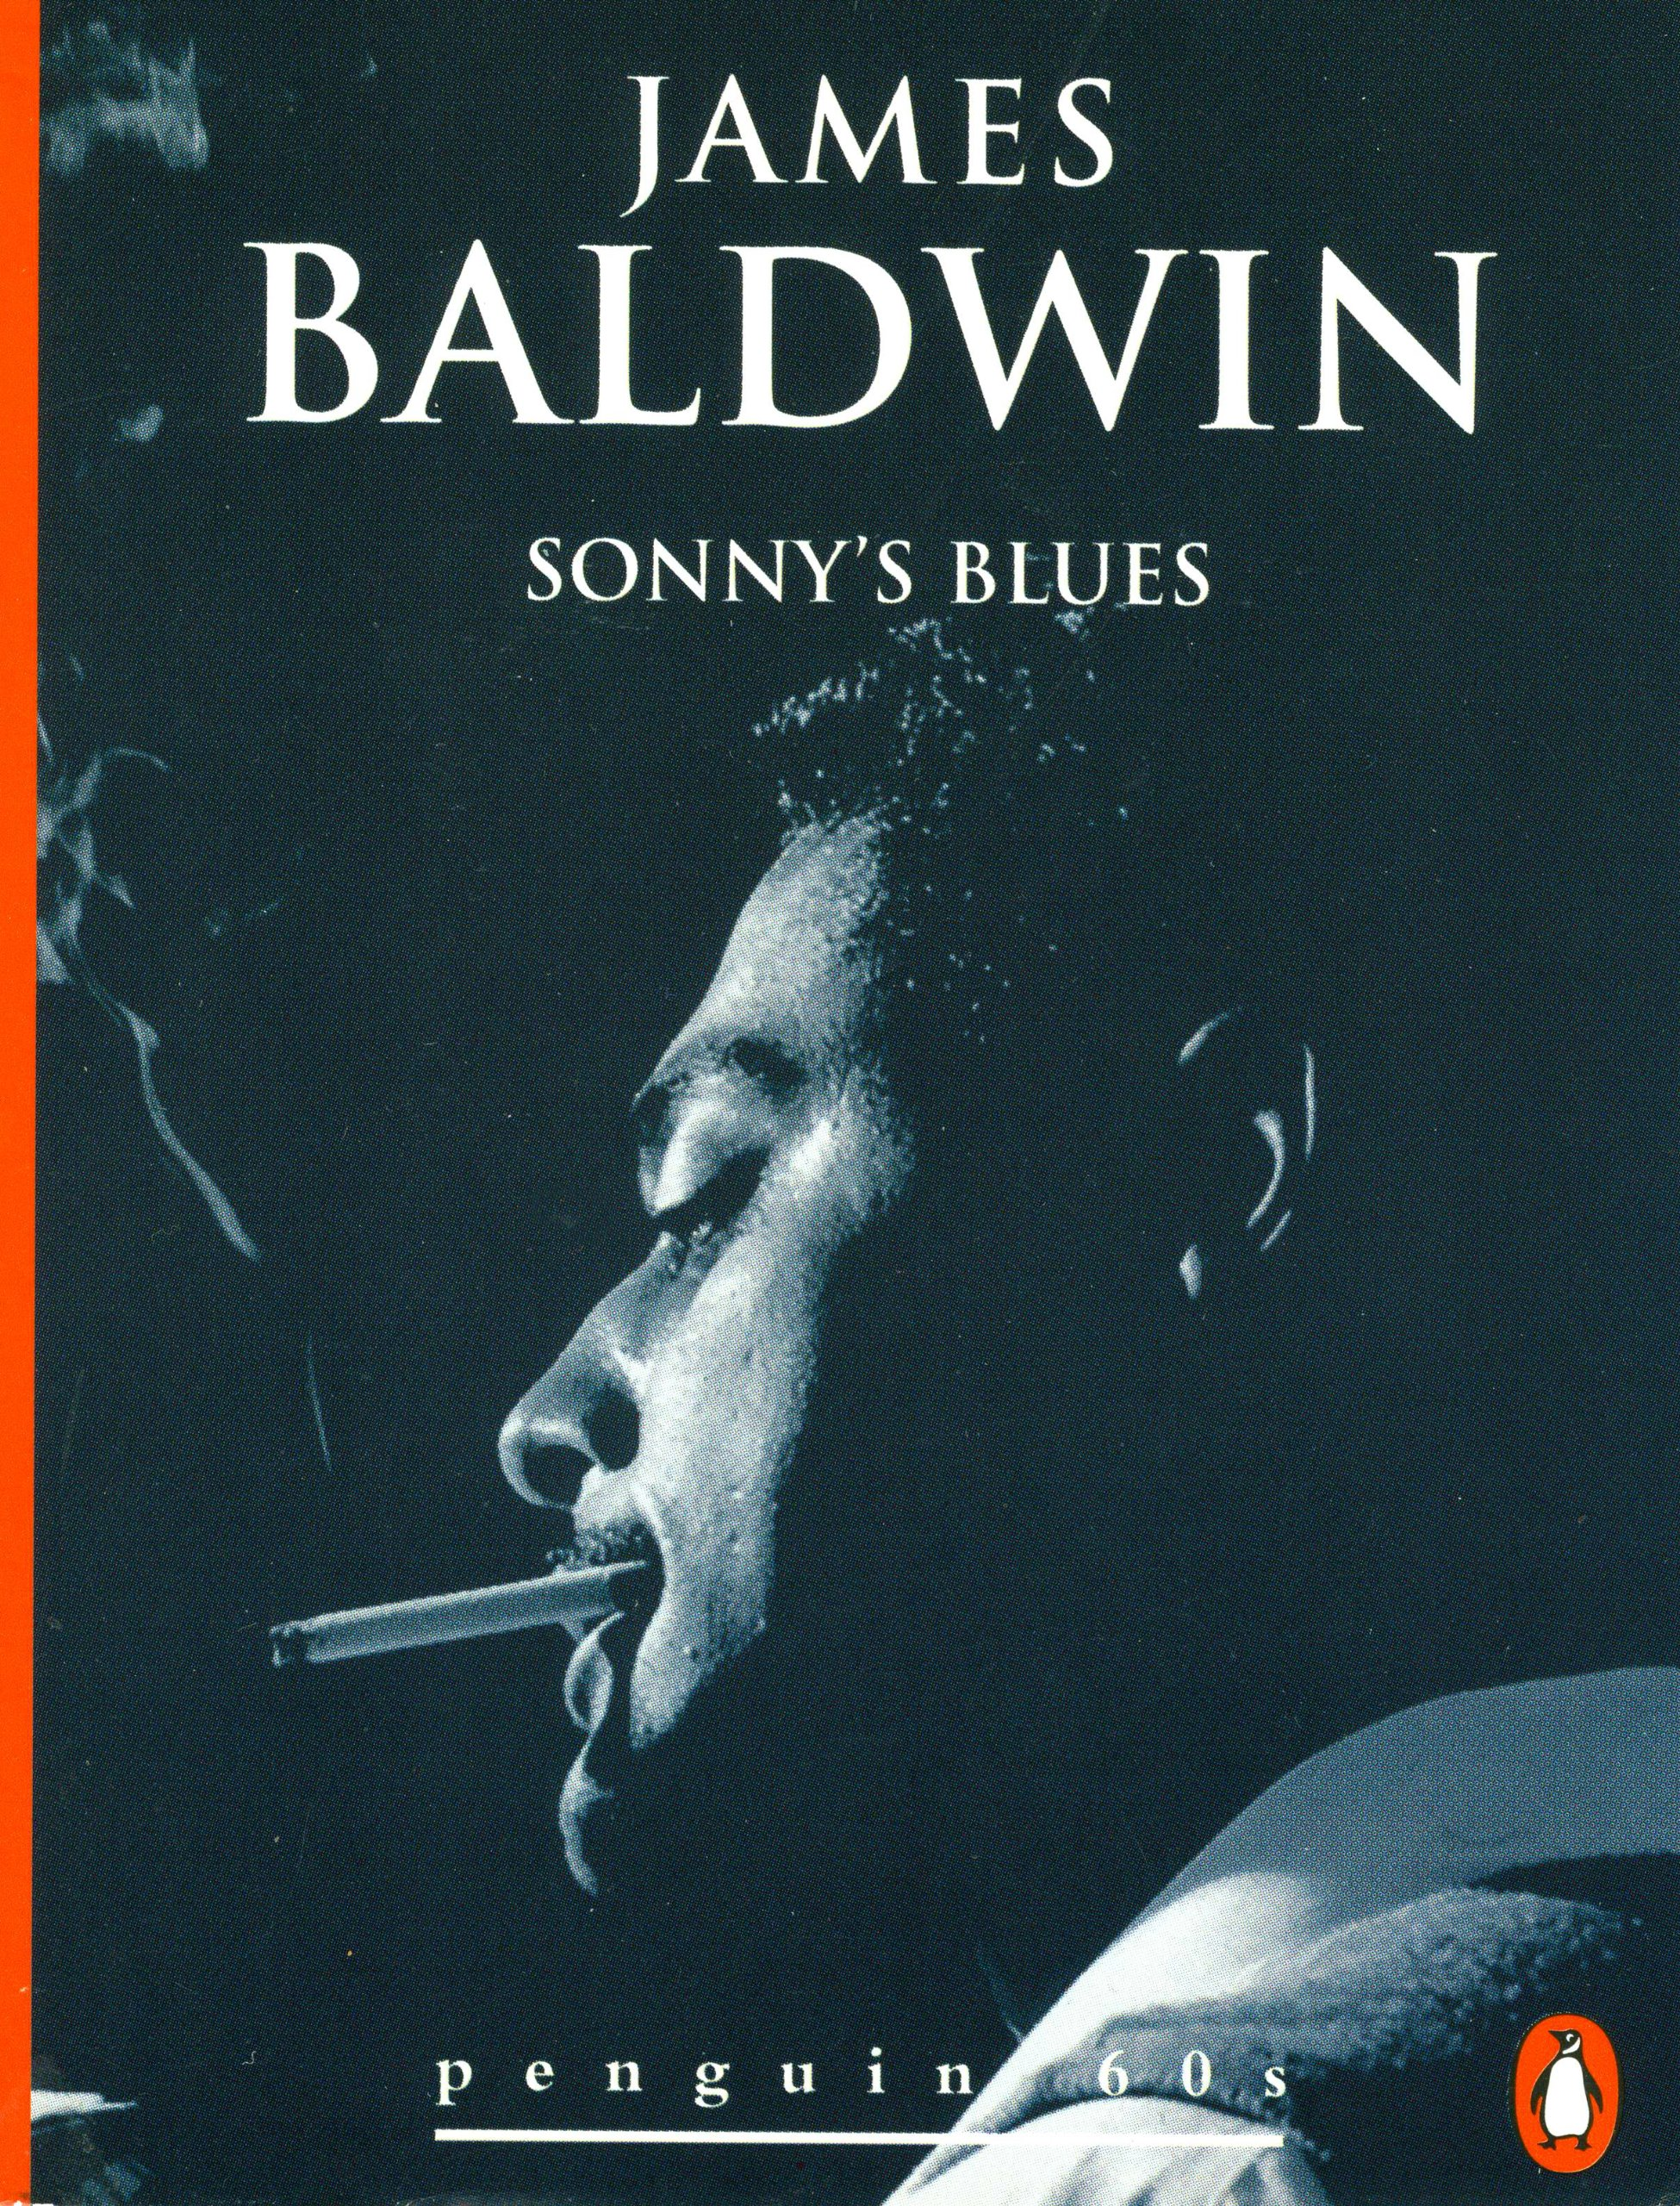 james baldwin essays online james baldwin essay on black english  james baldwin essays online james baldwin essays online collected essays by james baldwin